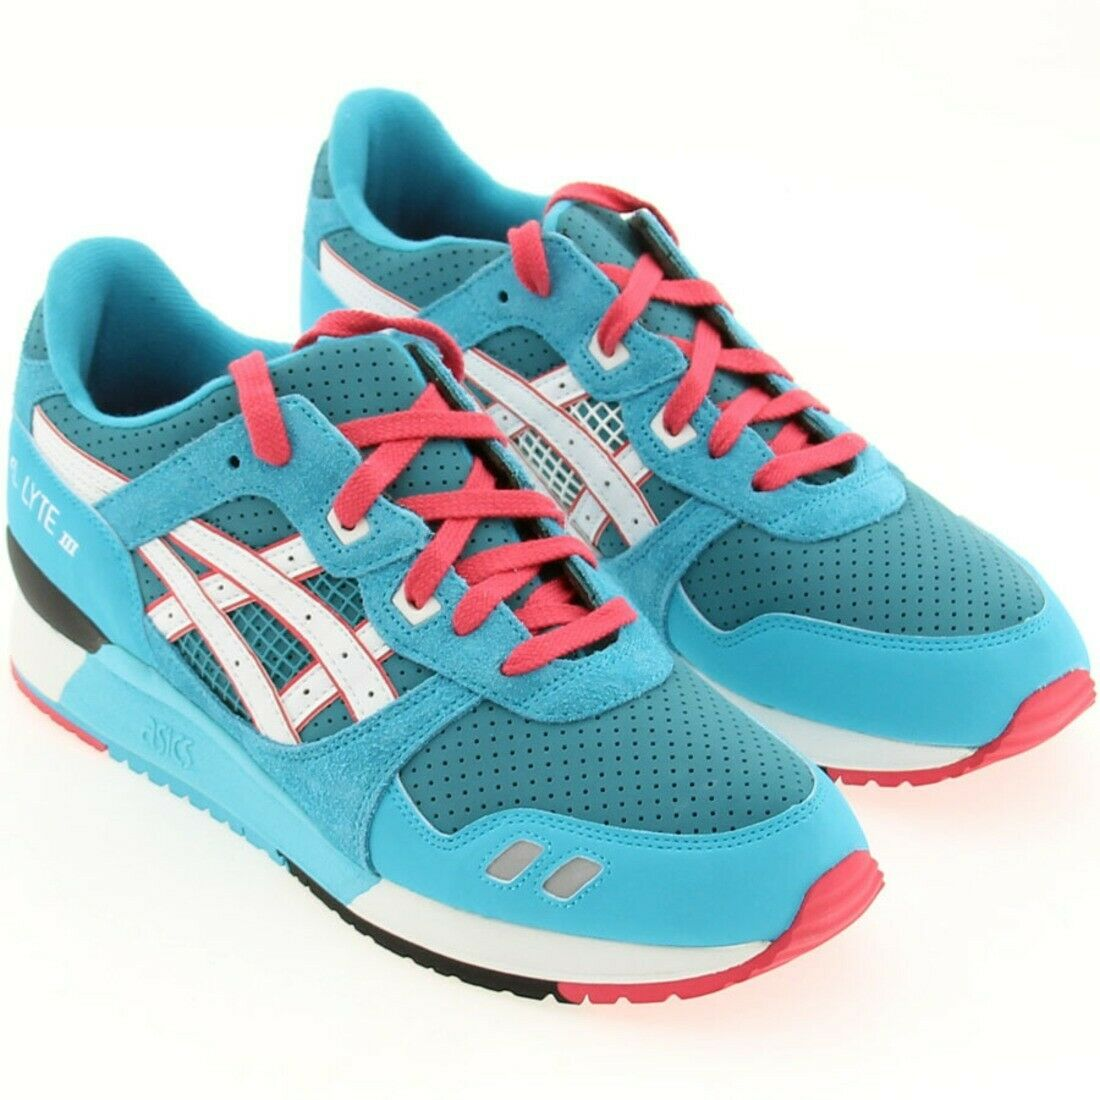 cbde80d7e sz 10.0 Gel-Lyte III 3 Teal Dragon red turquoise white US Size 10.0 ...